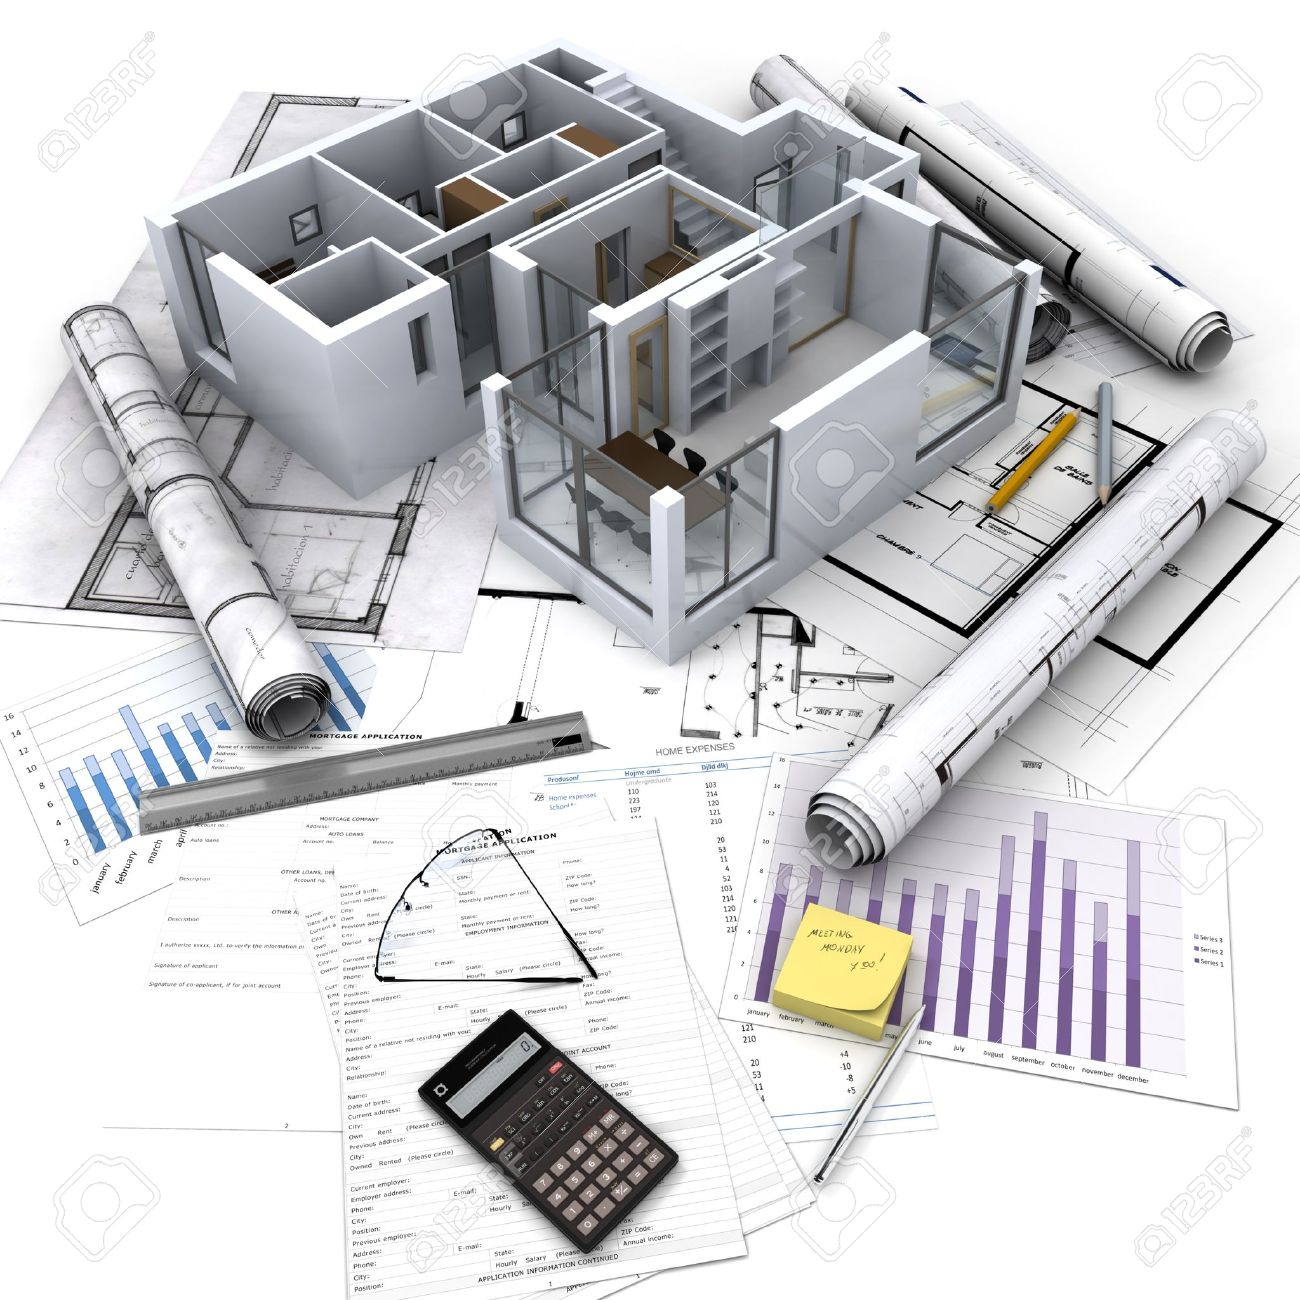 Office building with open interior on top of blueprints documents office building with open interior on top of blueprints documents and mortgage calculations stock photo malvernweather Image collections